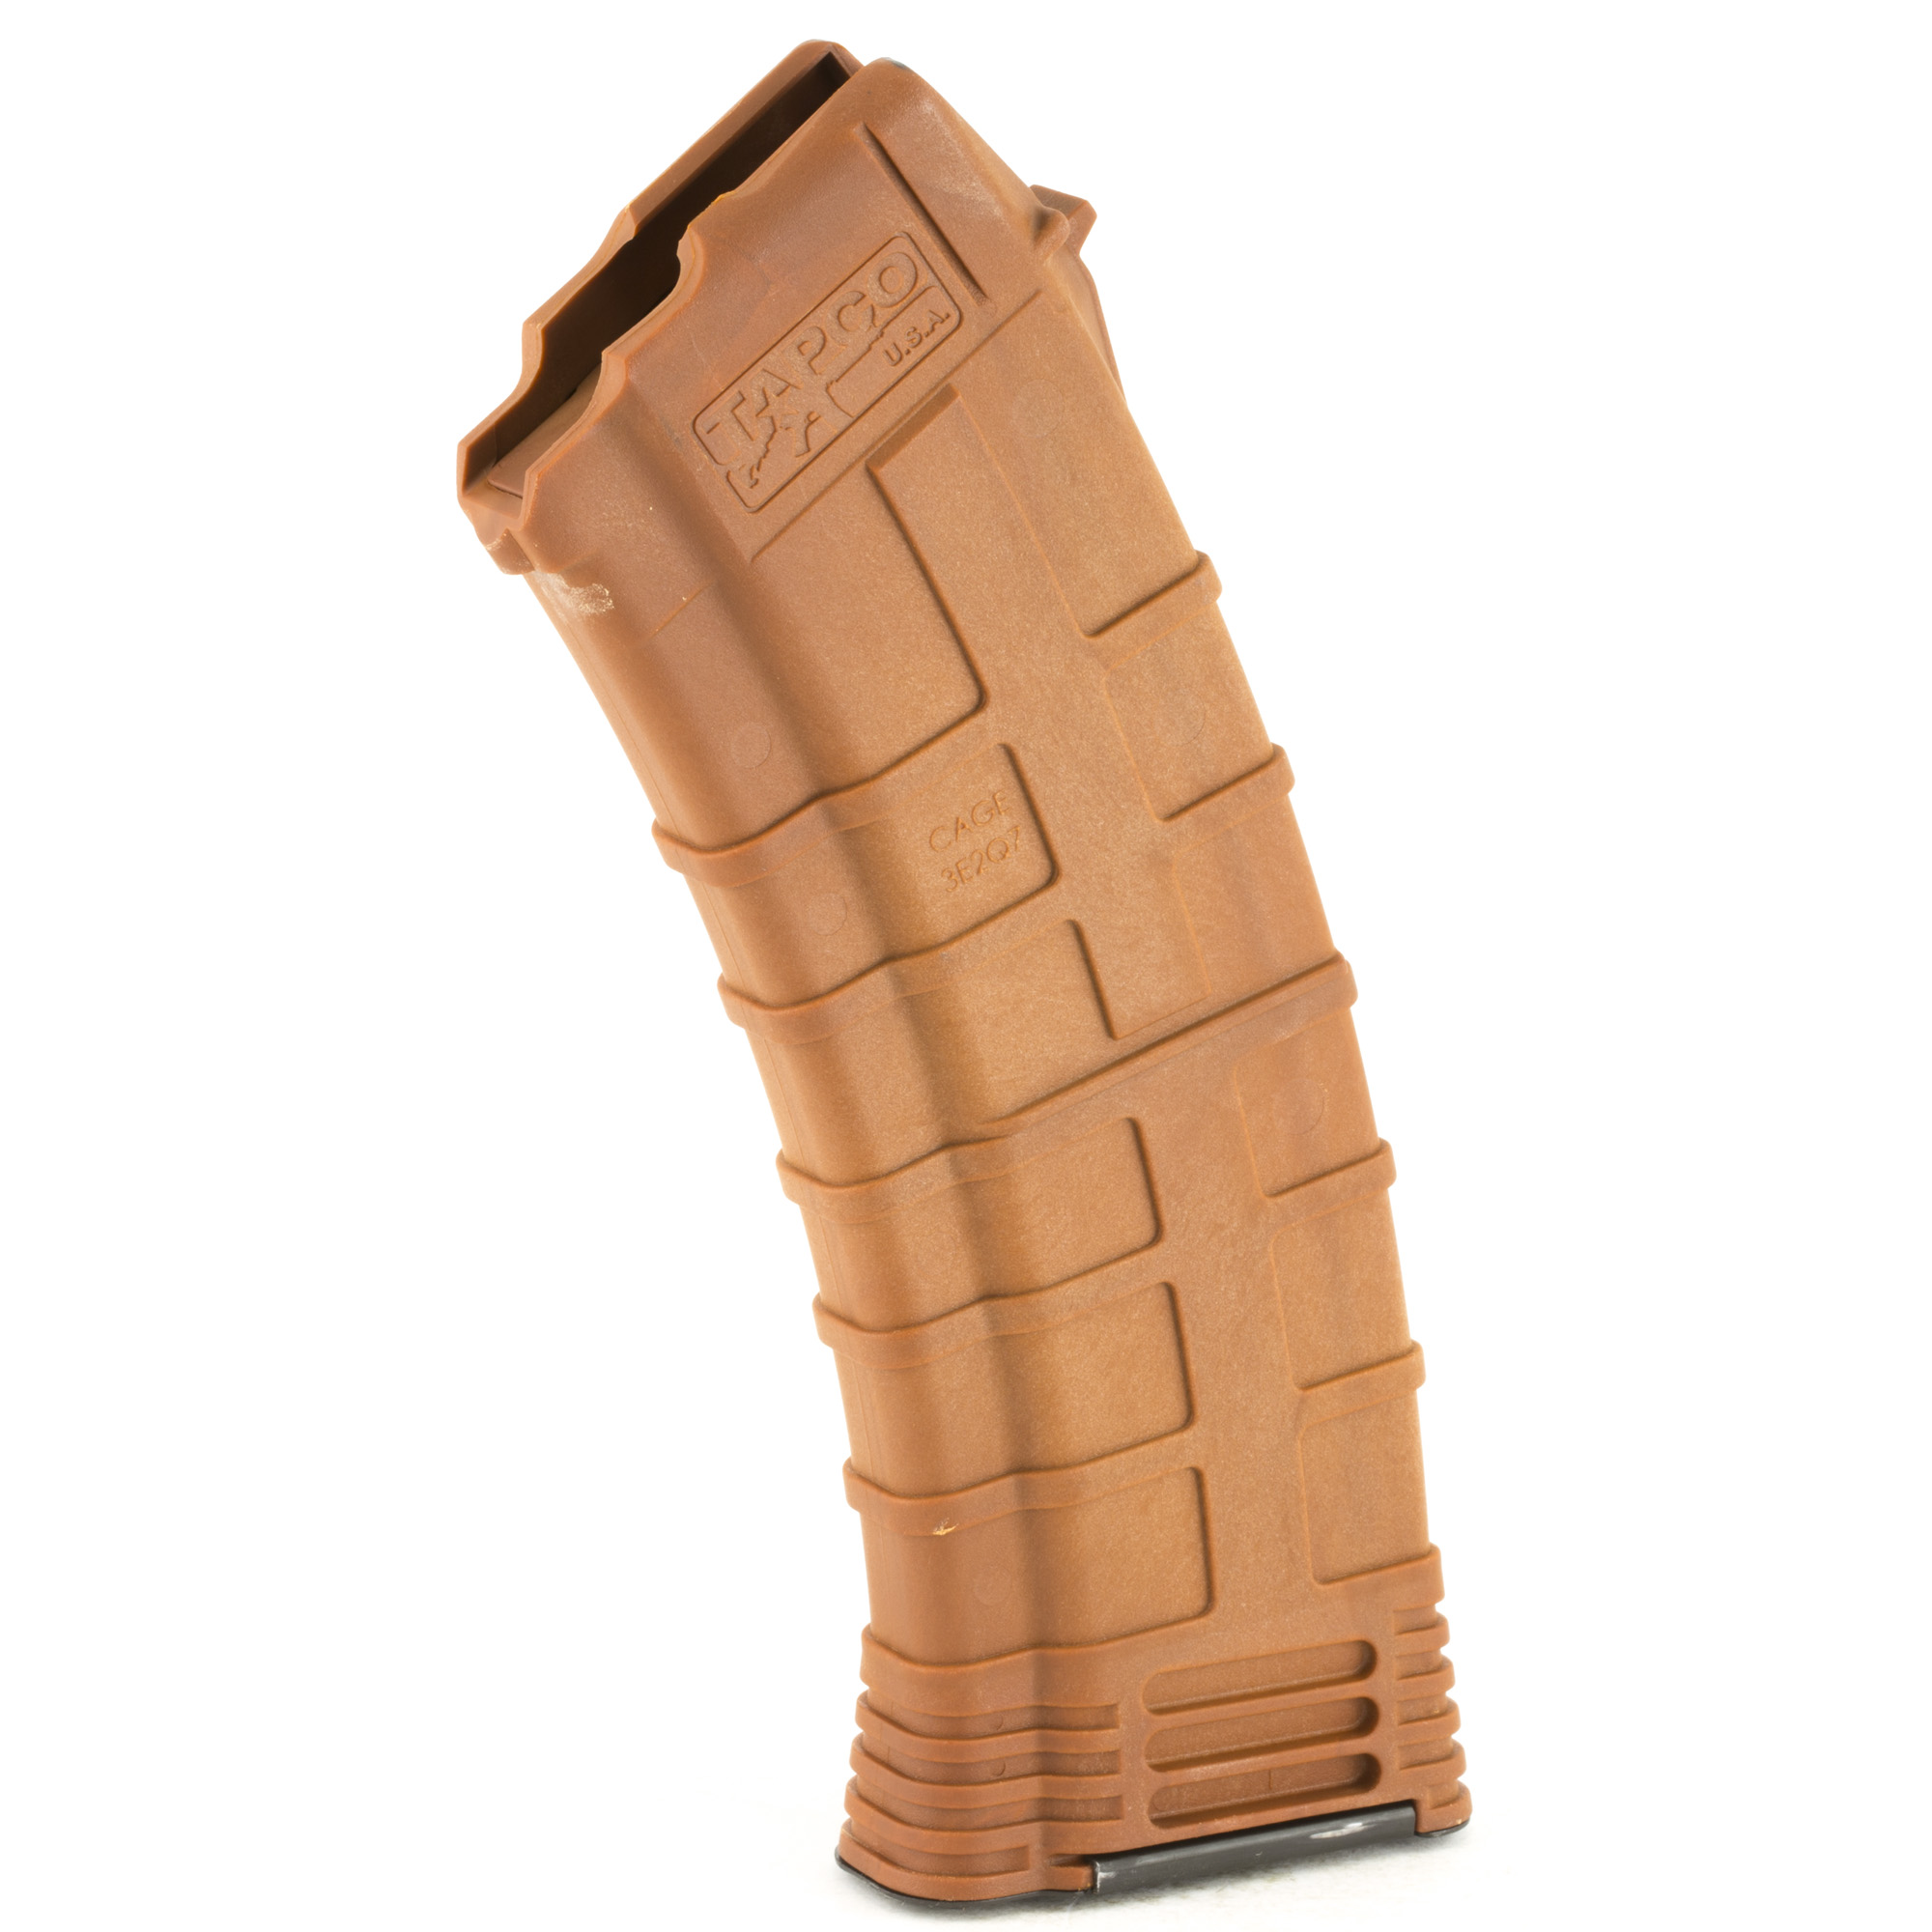 "The best two words to describe Tapco's AK 30rd magazine: ""rugged"" and ""reliable."" The reinforced composite material prevents corrosion while the heavy duty spring and anti-tilt follower ensure that every round will feed perfectly. Fits the AK-74 using 5.45x39mm ammunition. When your Kalashnikov needs a magazine that can handle a beating"" no questions asked"" the Tapco 30rd AK Magazine is the only logical choice."